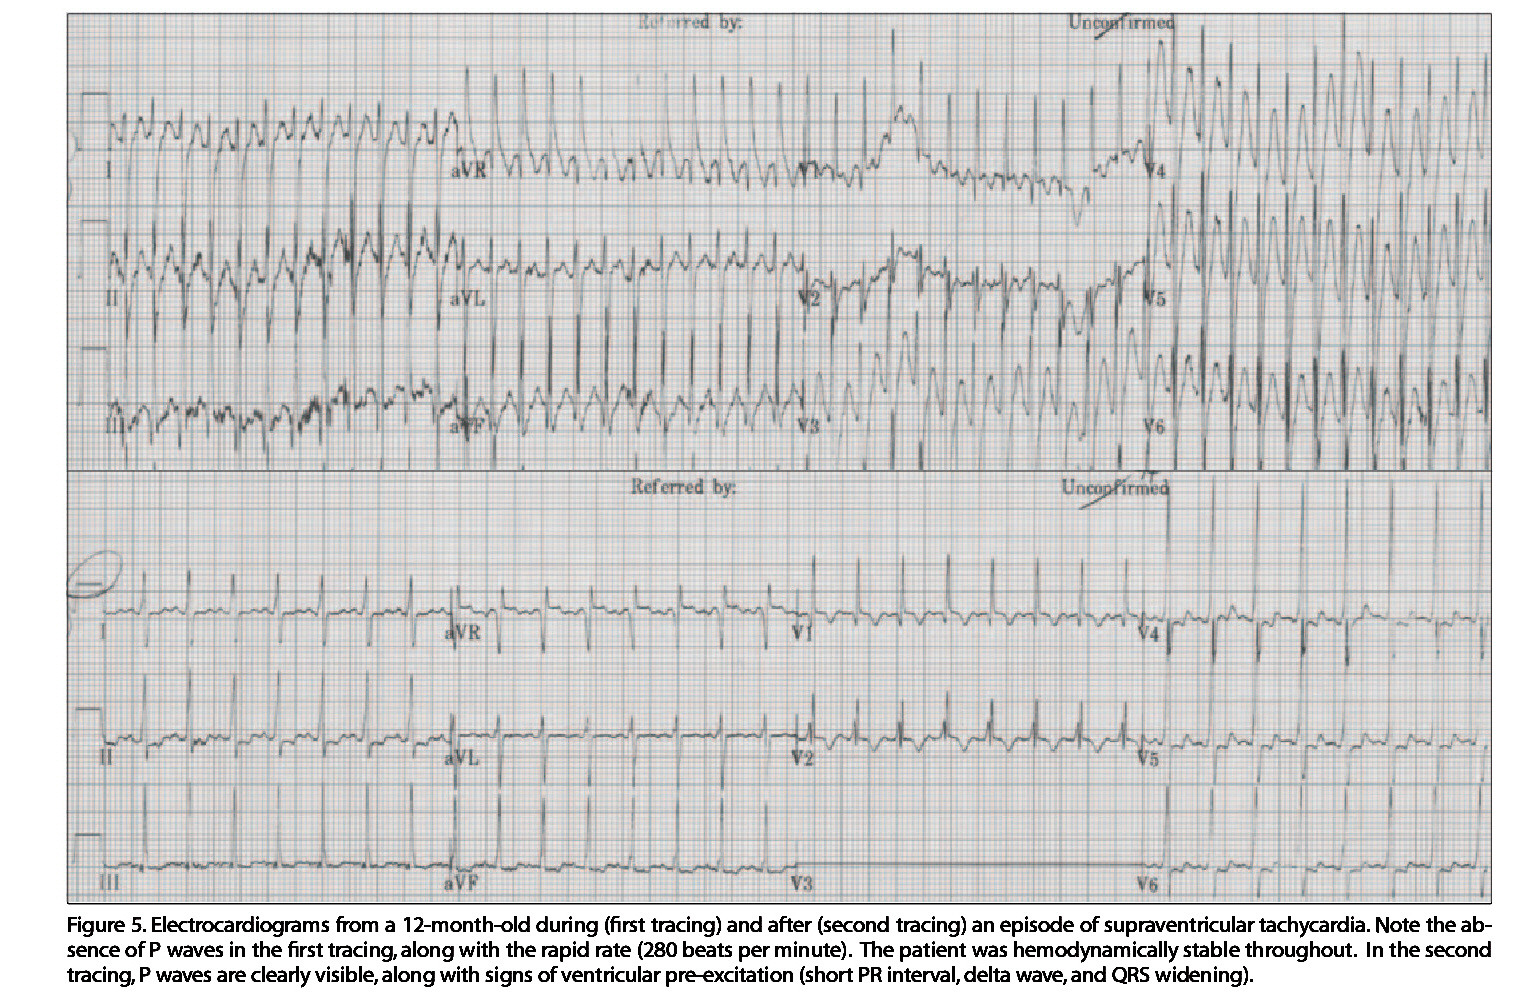 Figure 5. Electrocardiograms from a 12-month-old during (first tracing) and after (second tracing) an episode of supraventricular tachycardia. Note the absence of P waves in the first tracing, along with the rapid rate (280 beats per minute). The patient was hemodynamically stable throughout. In the second tracing, P waves are clearly visible, along with signs of ventricular preexcitation (short PR interval, delta wave, and QRS widening).